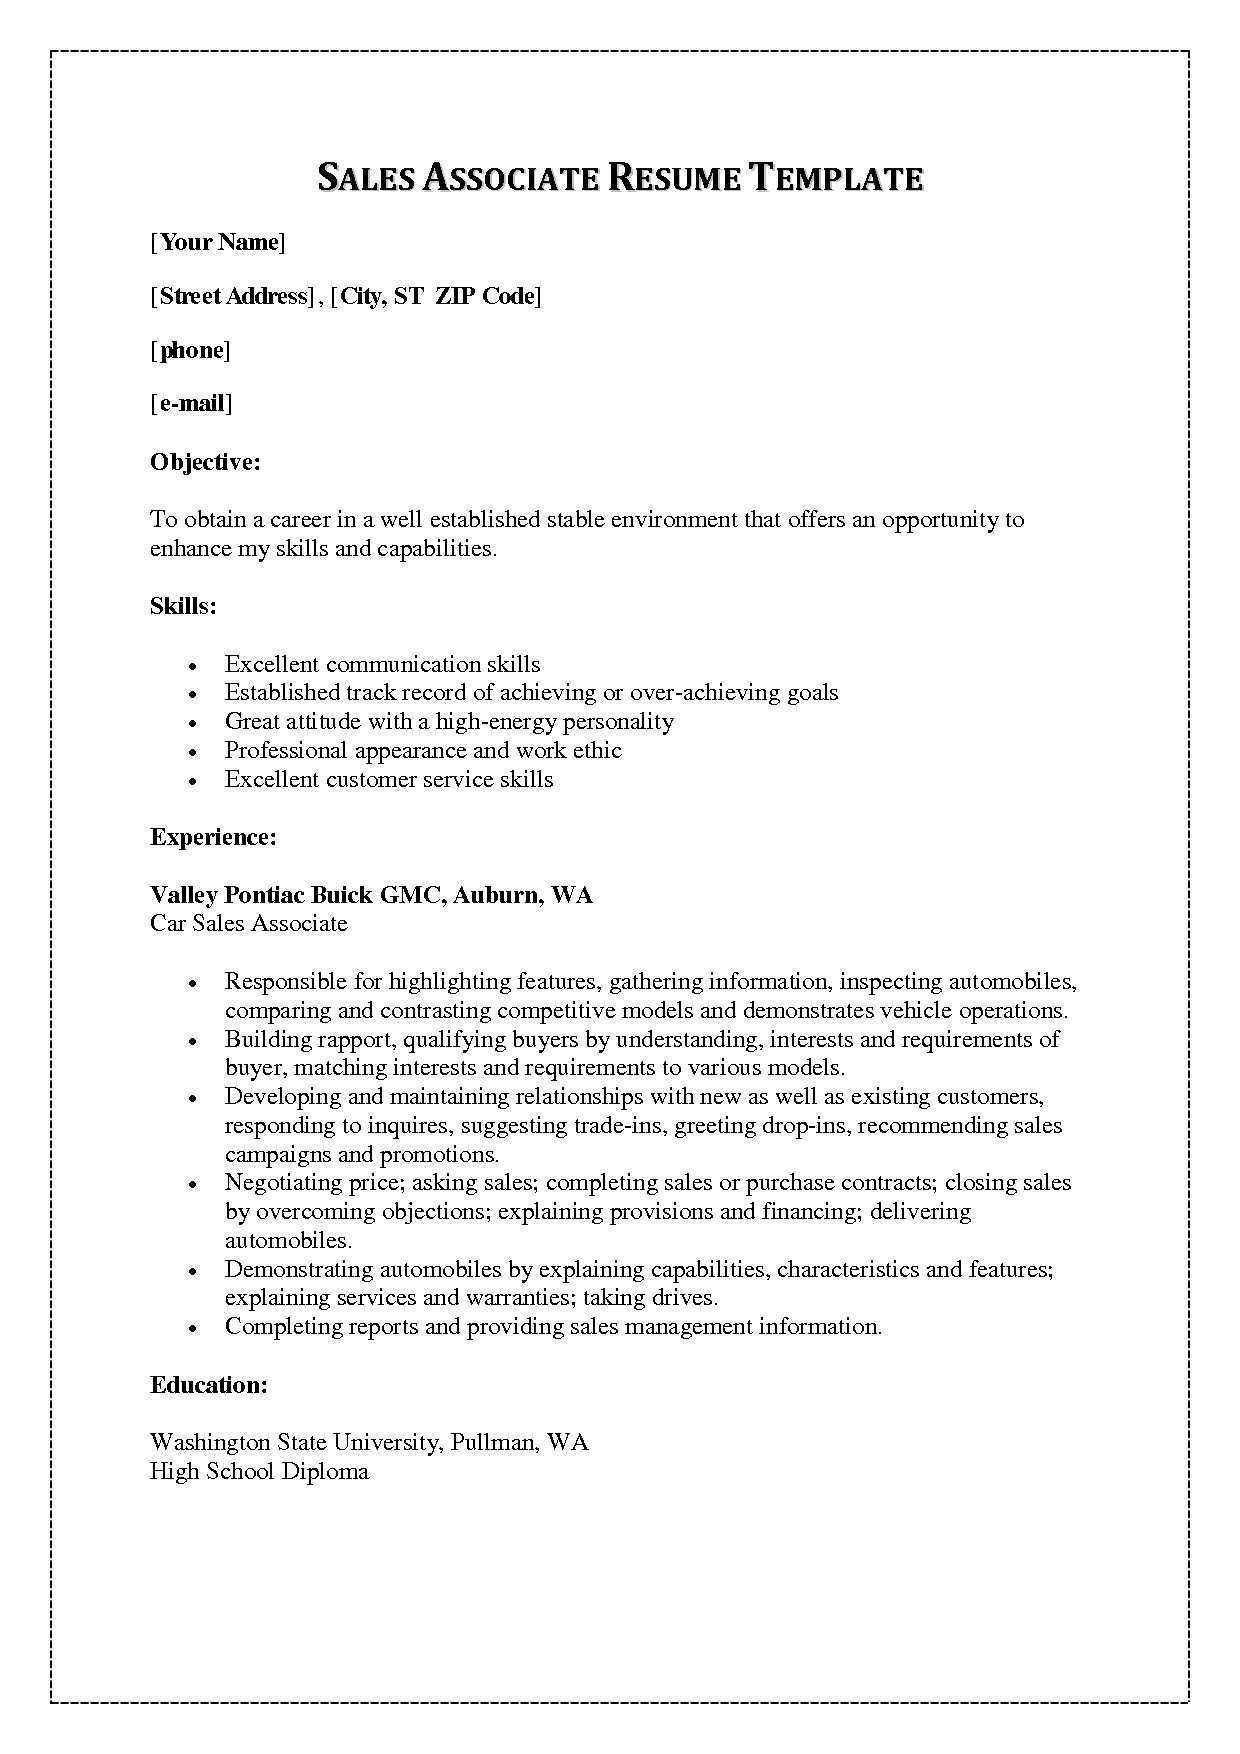 32 new customer service resume objective or summary in